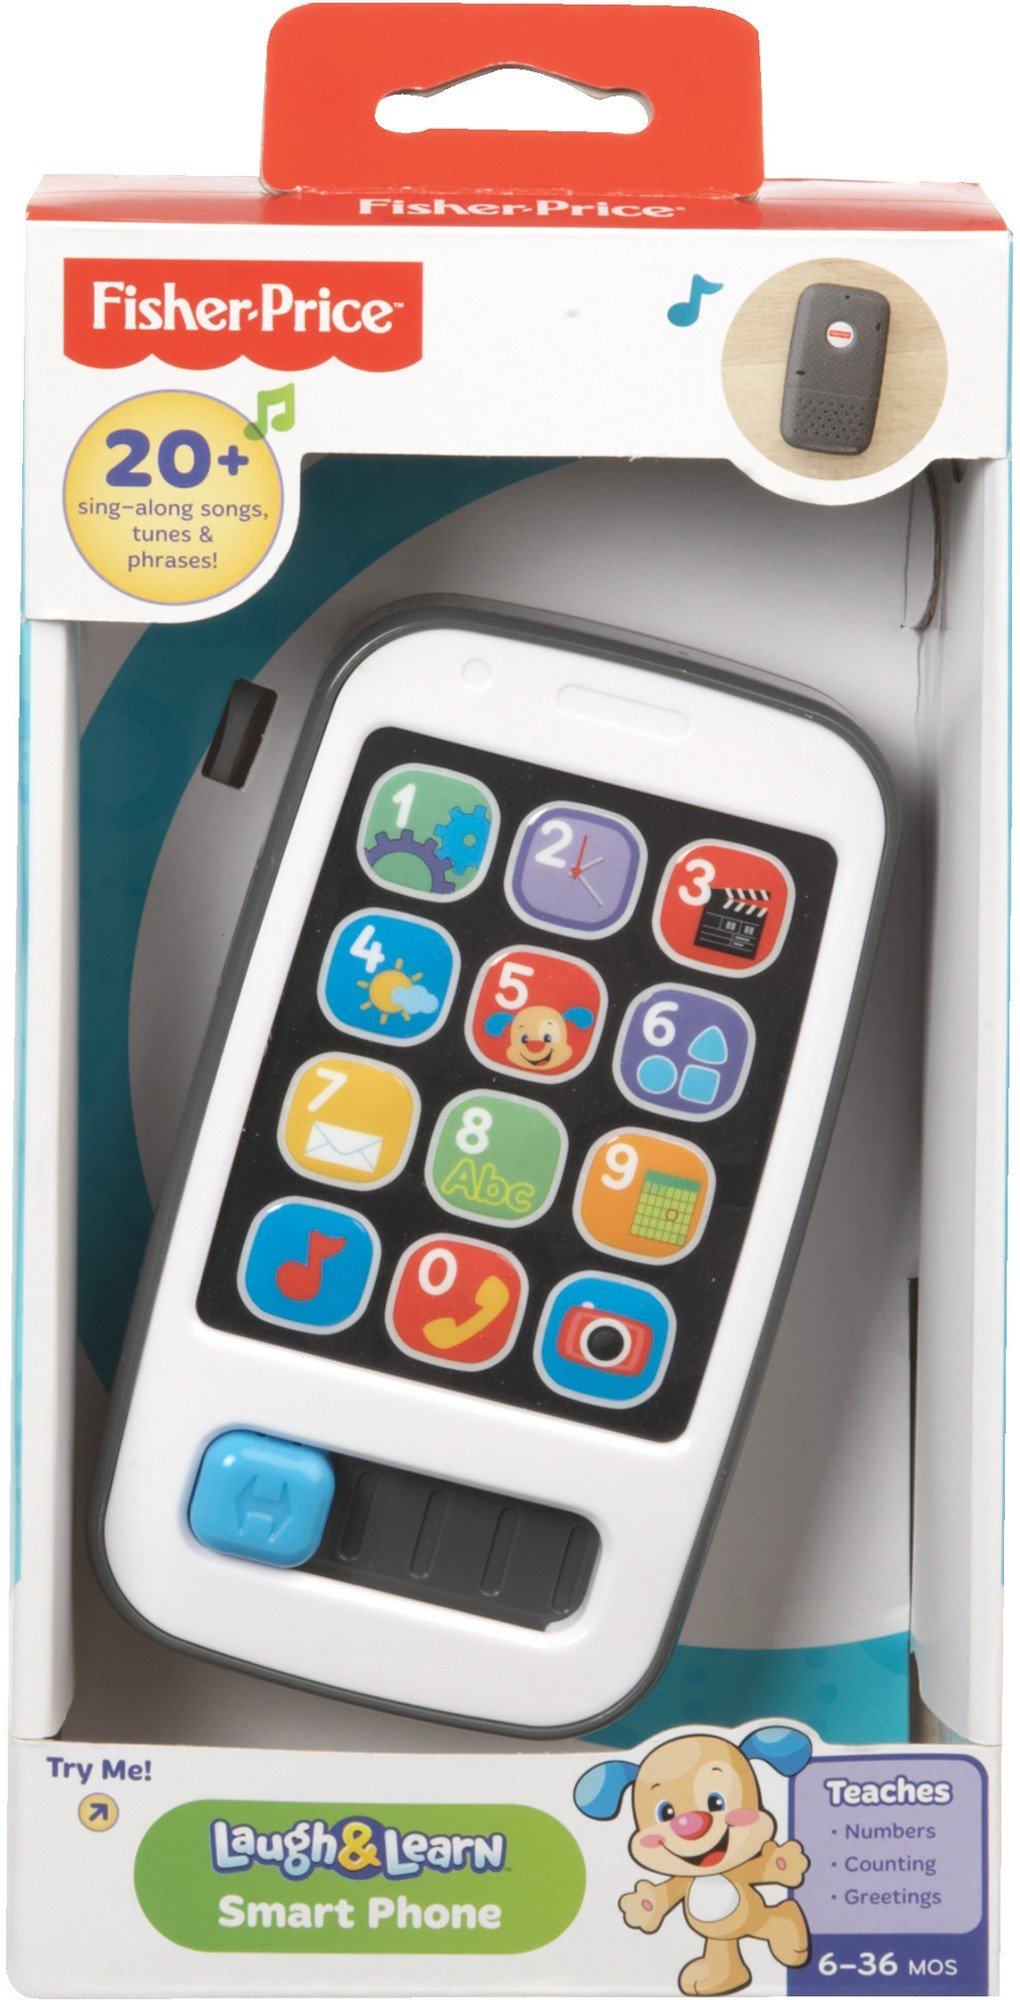 Fisher Price Laugh & Learn Smart Phone - LAT DLM32 Mūzikalā rotaļlieta Telefons (lat.val.)